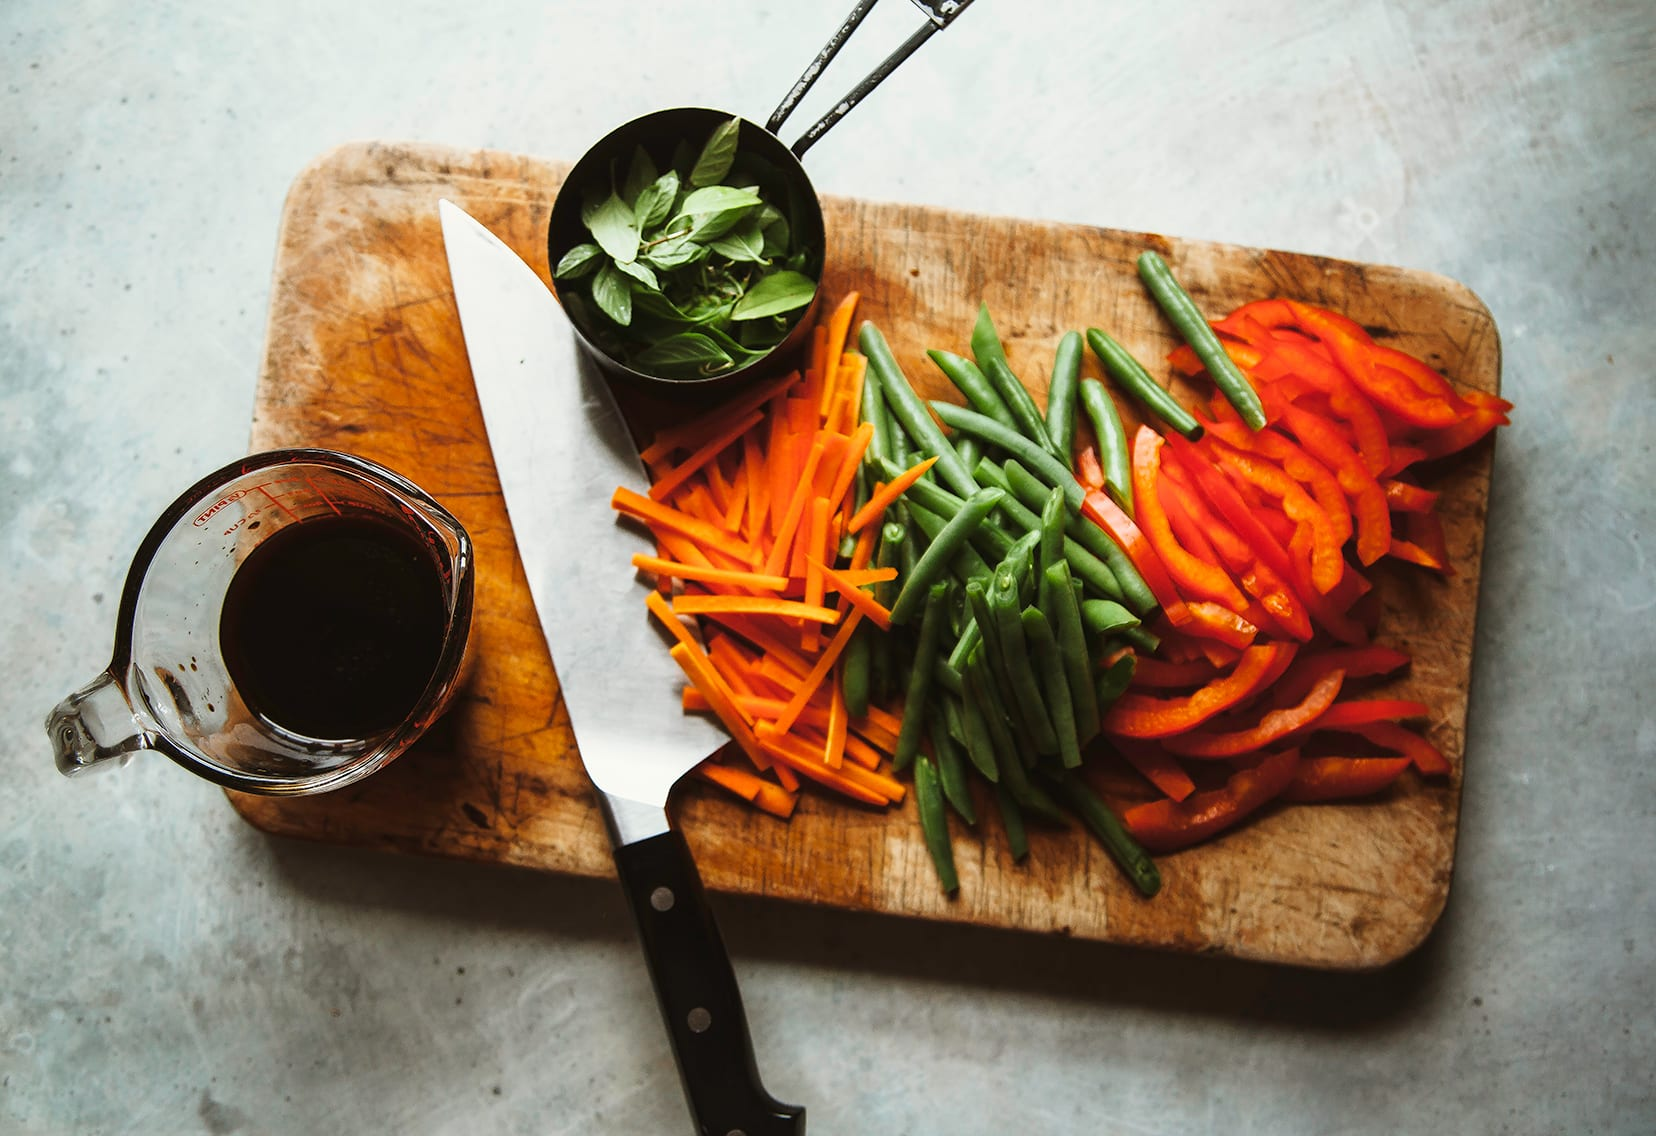 Image shows sliced vegetables on a cutting board along with a cup of Thai basil leaves.